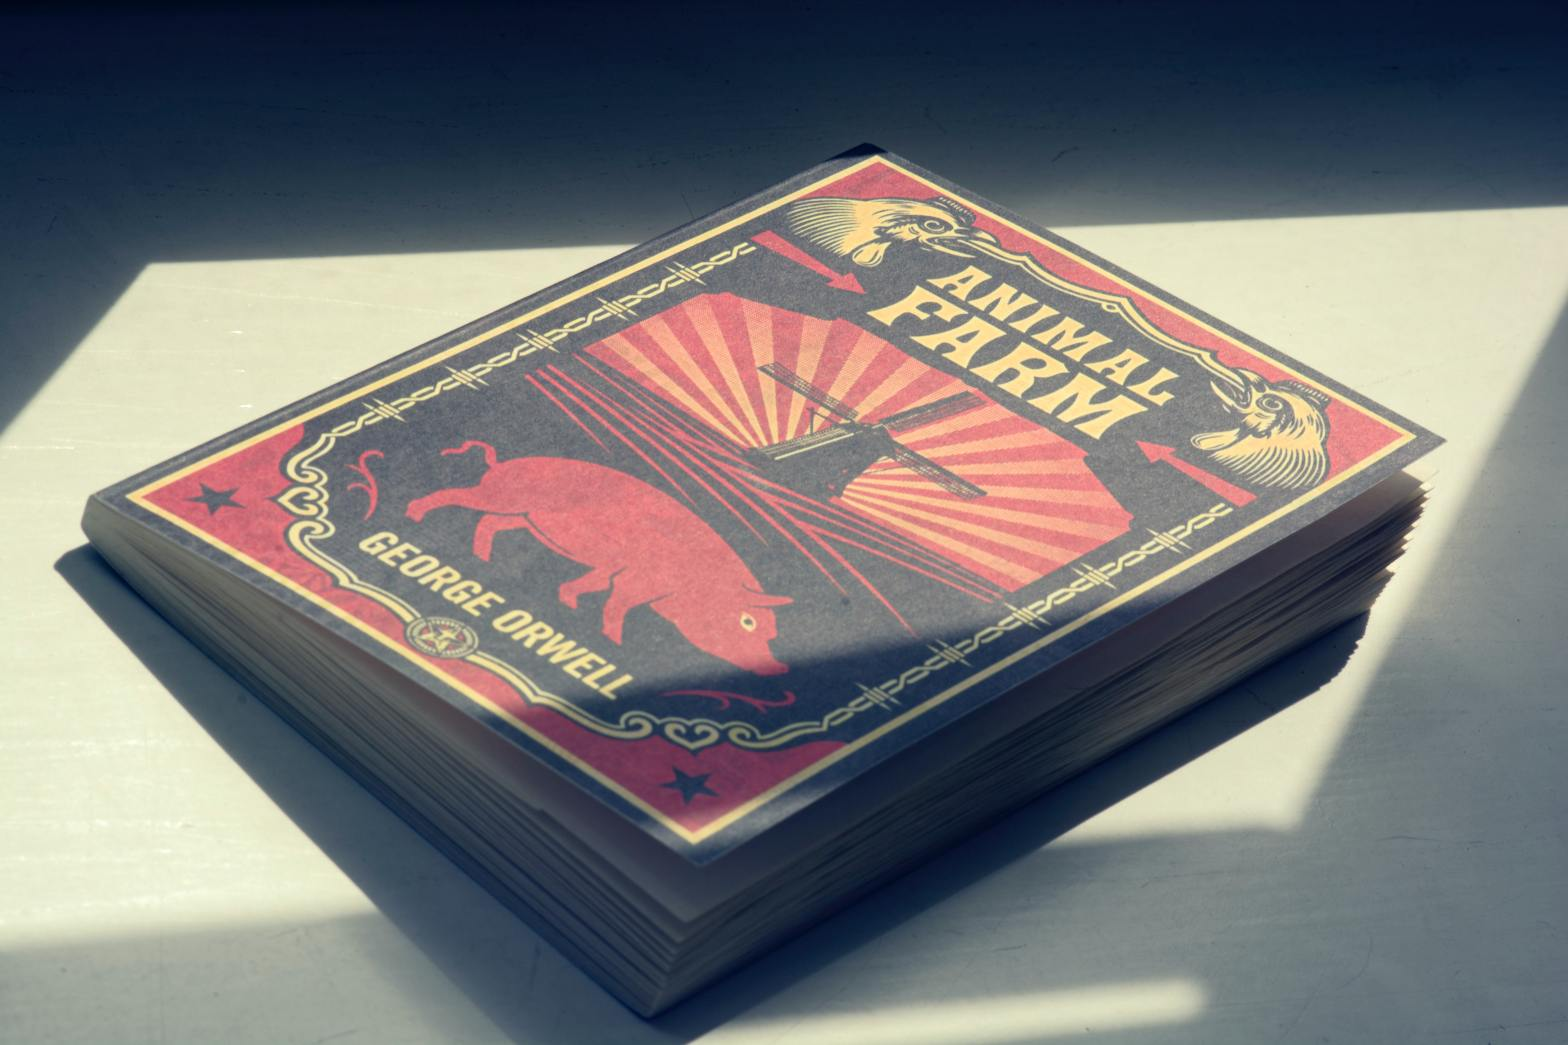 Copy of Animal Farm by George Orwell on a white surface, under sun rays